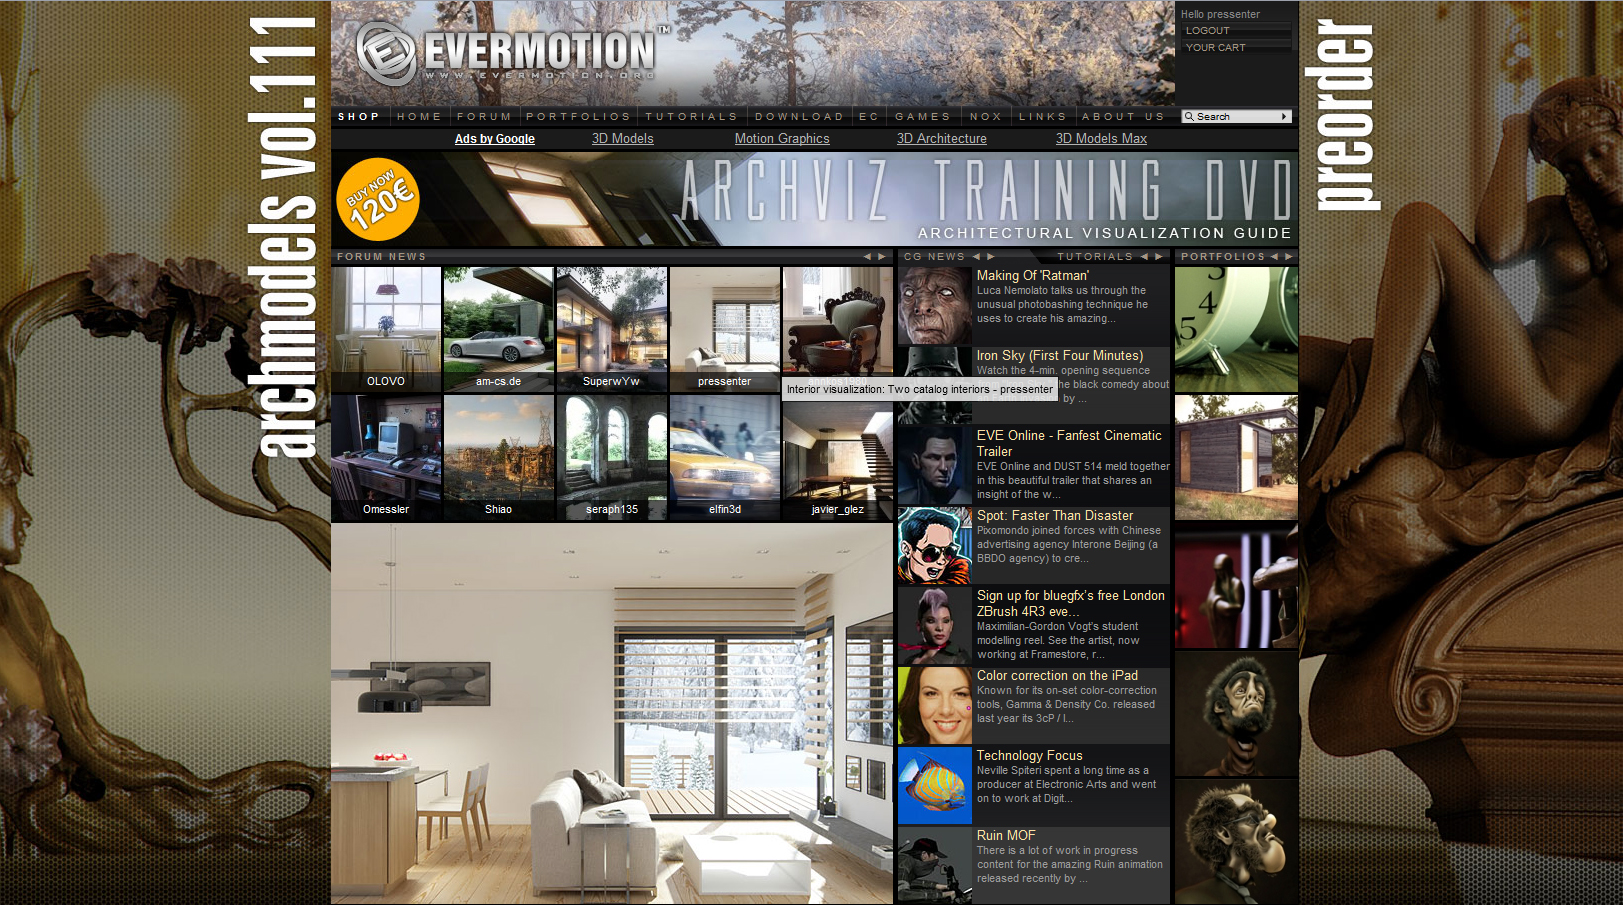 frontpage-evermotion-pressenter-design-mtm-teo-amarylis.jpg